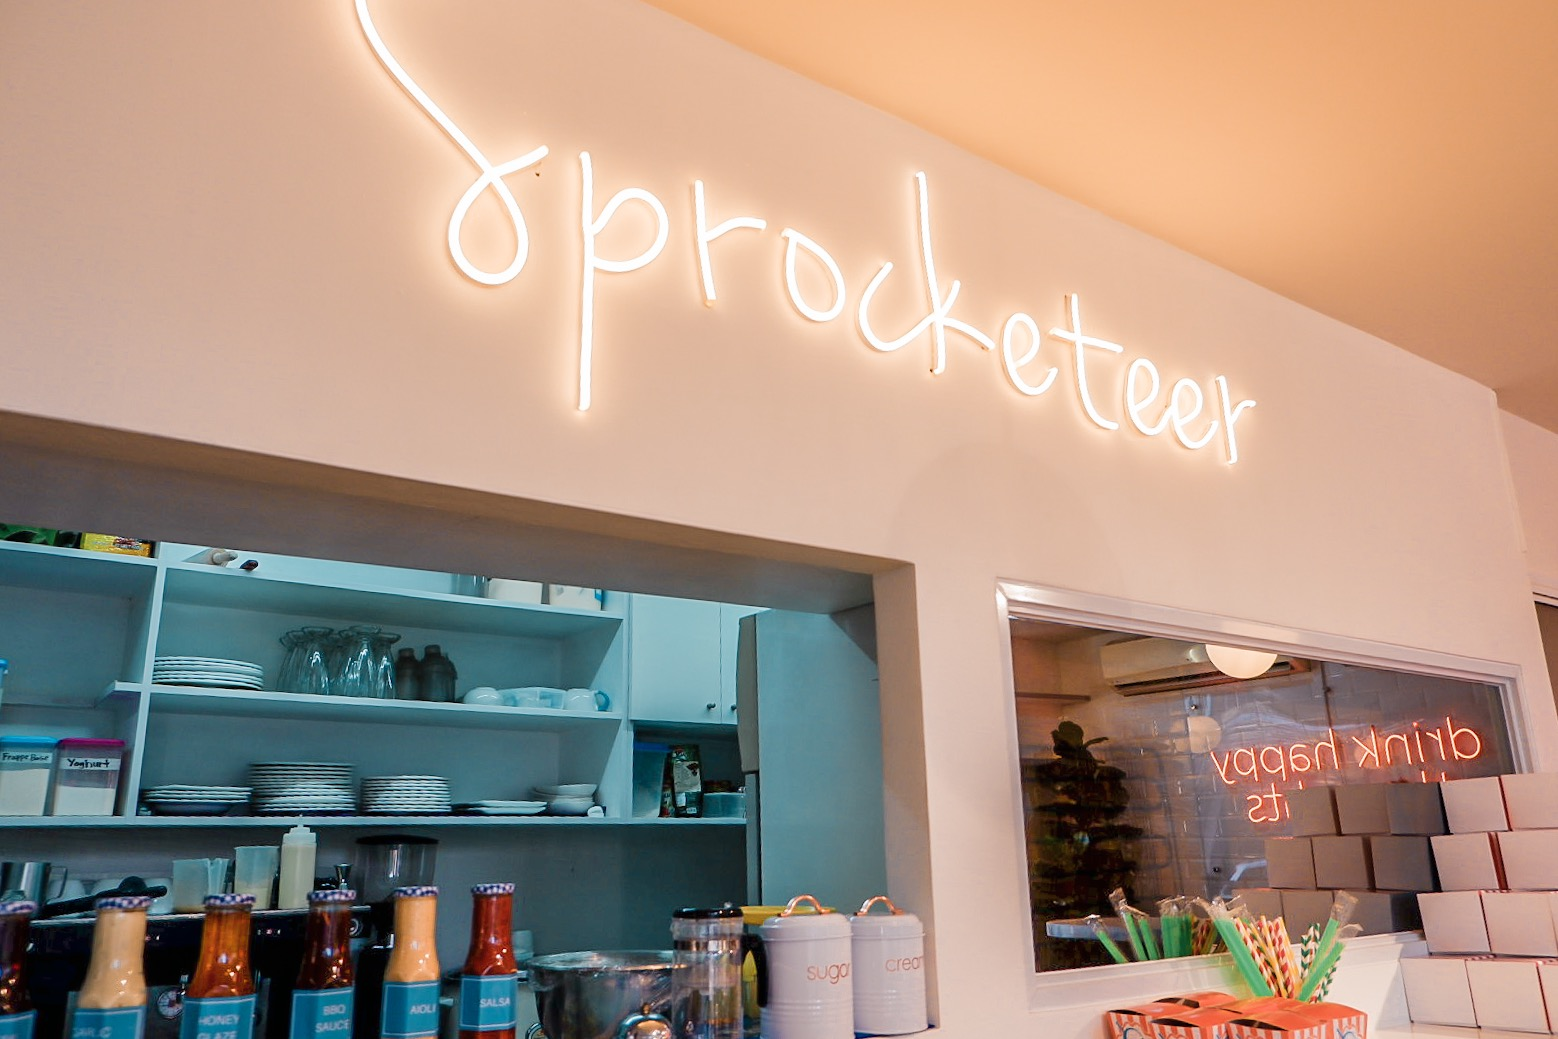 Sprocketeer Cafe: Modern Diner with Retro Vibes